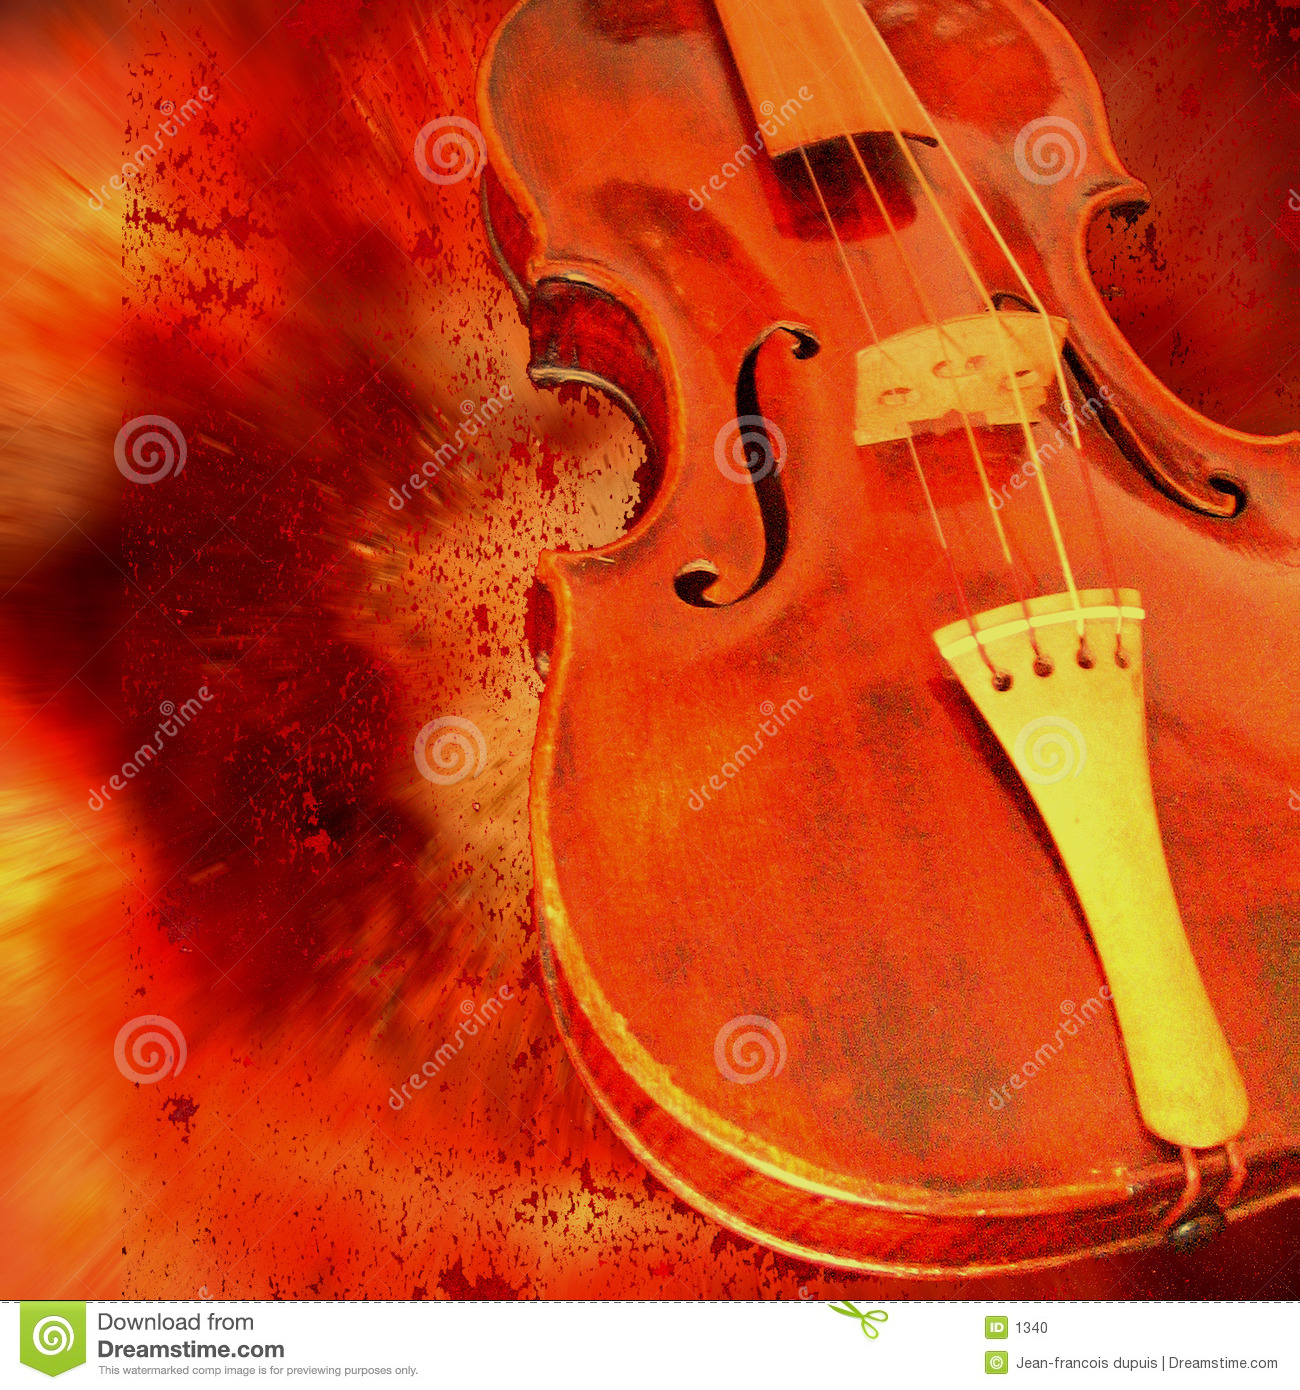 Download Red violin stock photo. Image of audience, perform, gentle - 1340